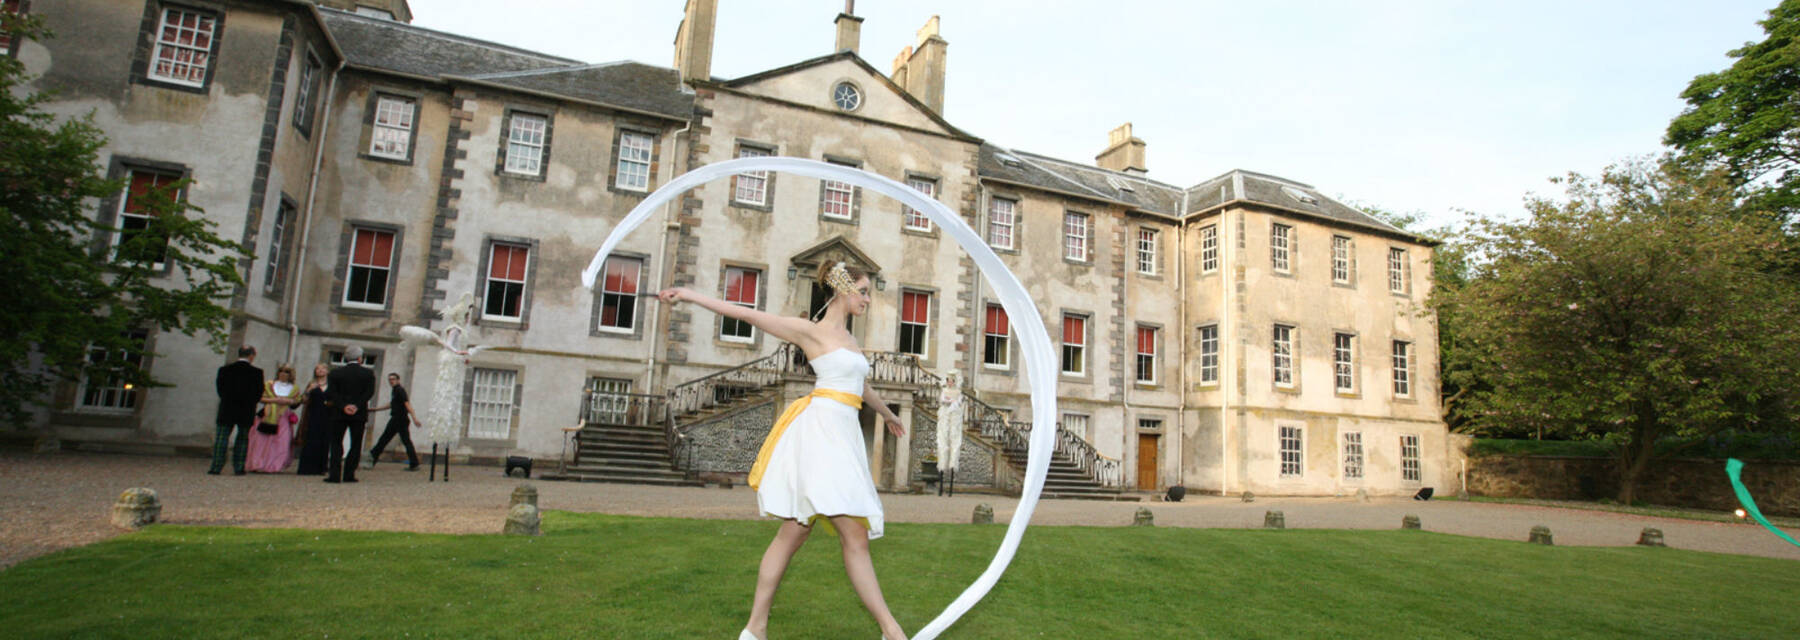 A girl stands with a gymnastic ribbon on the lawn in front of Newhailes House